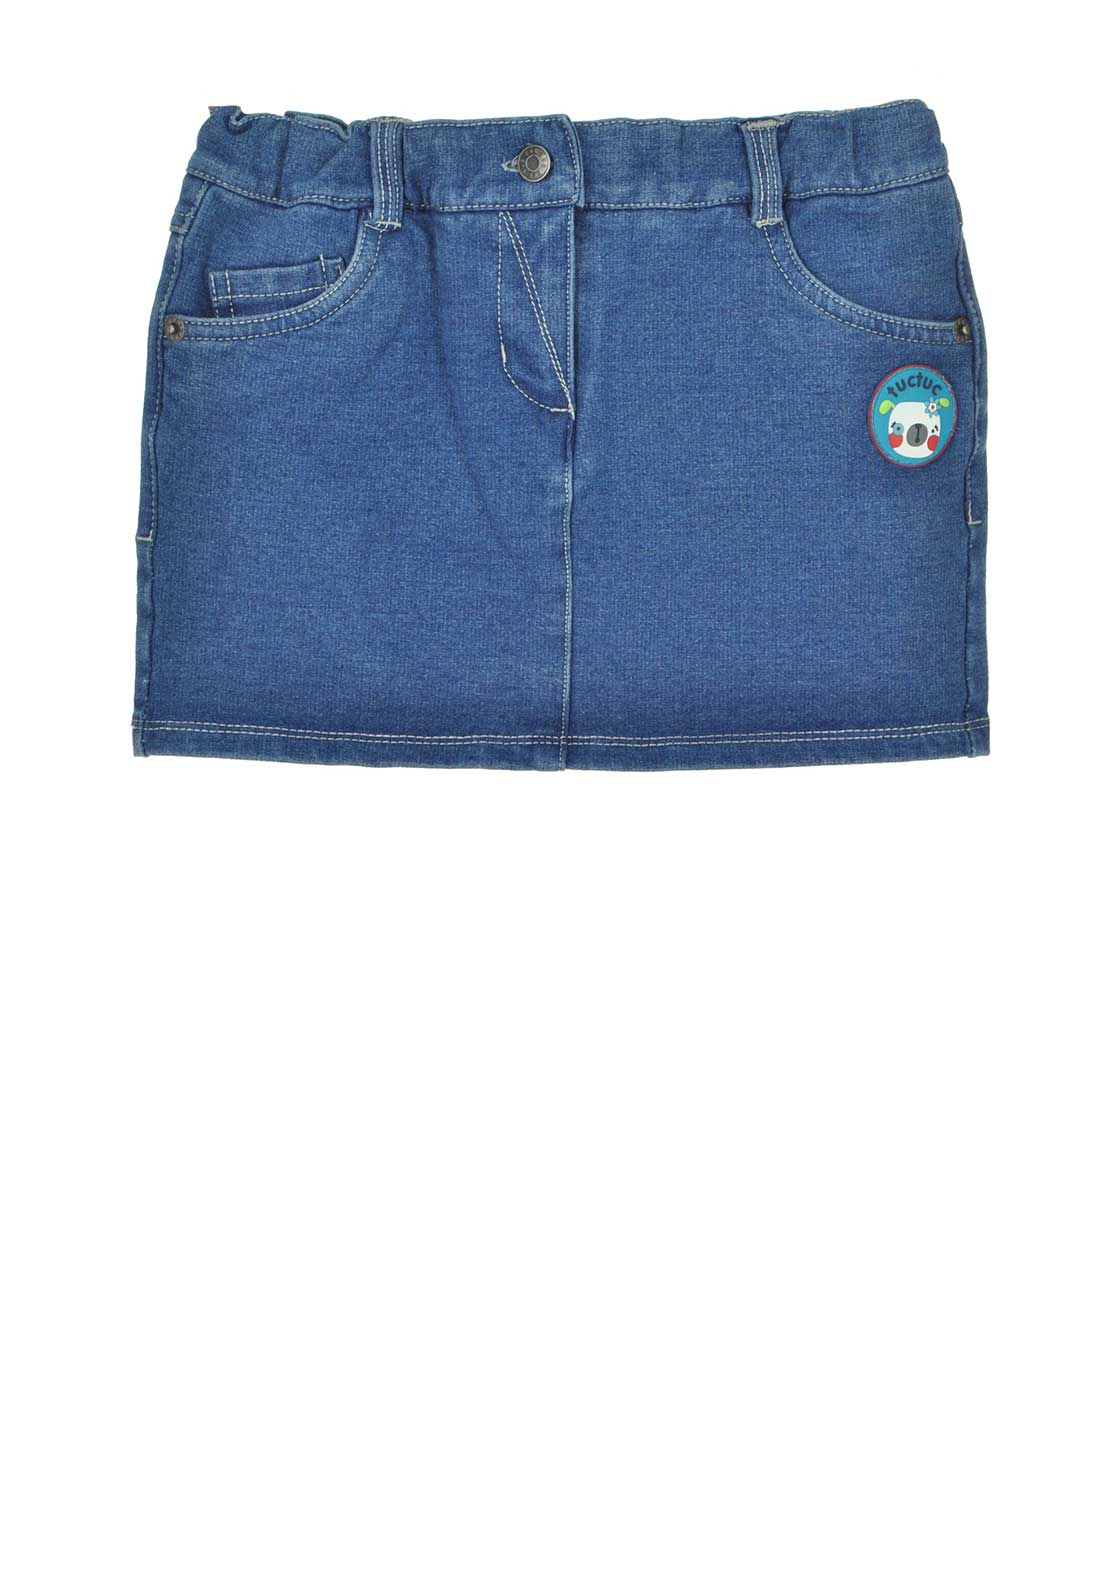 Tuc Tuc Girls Denim Skirt, Blue